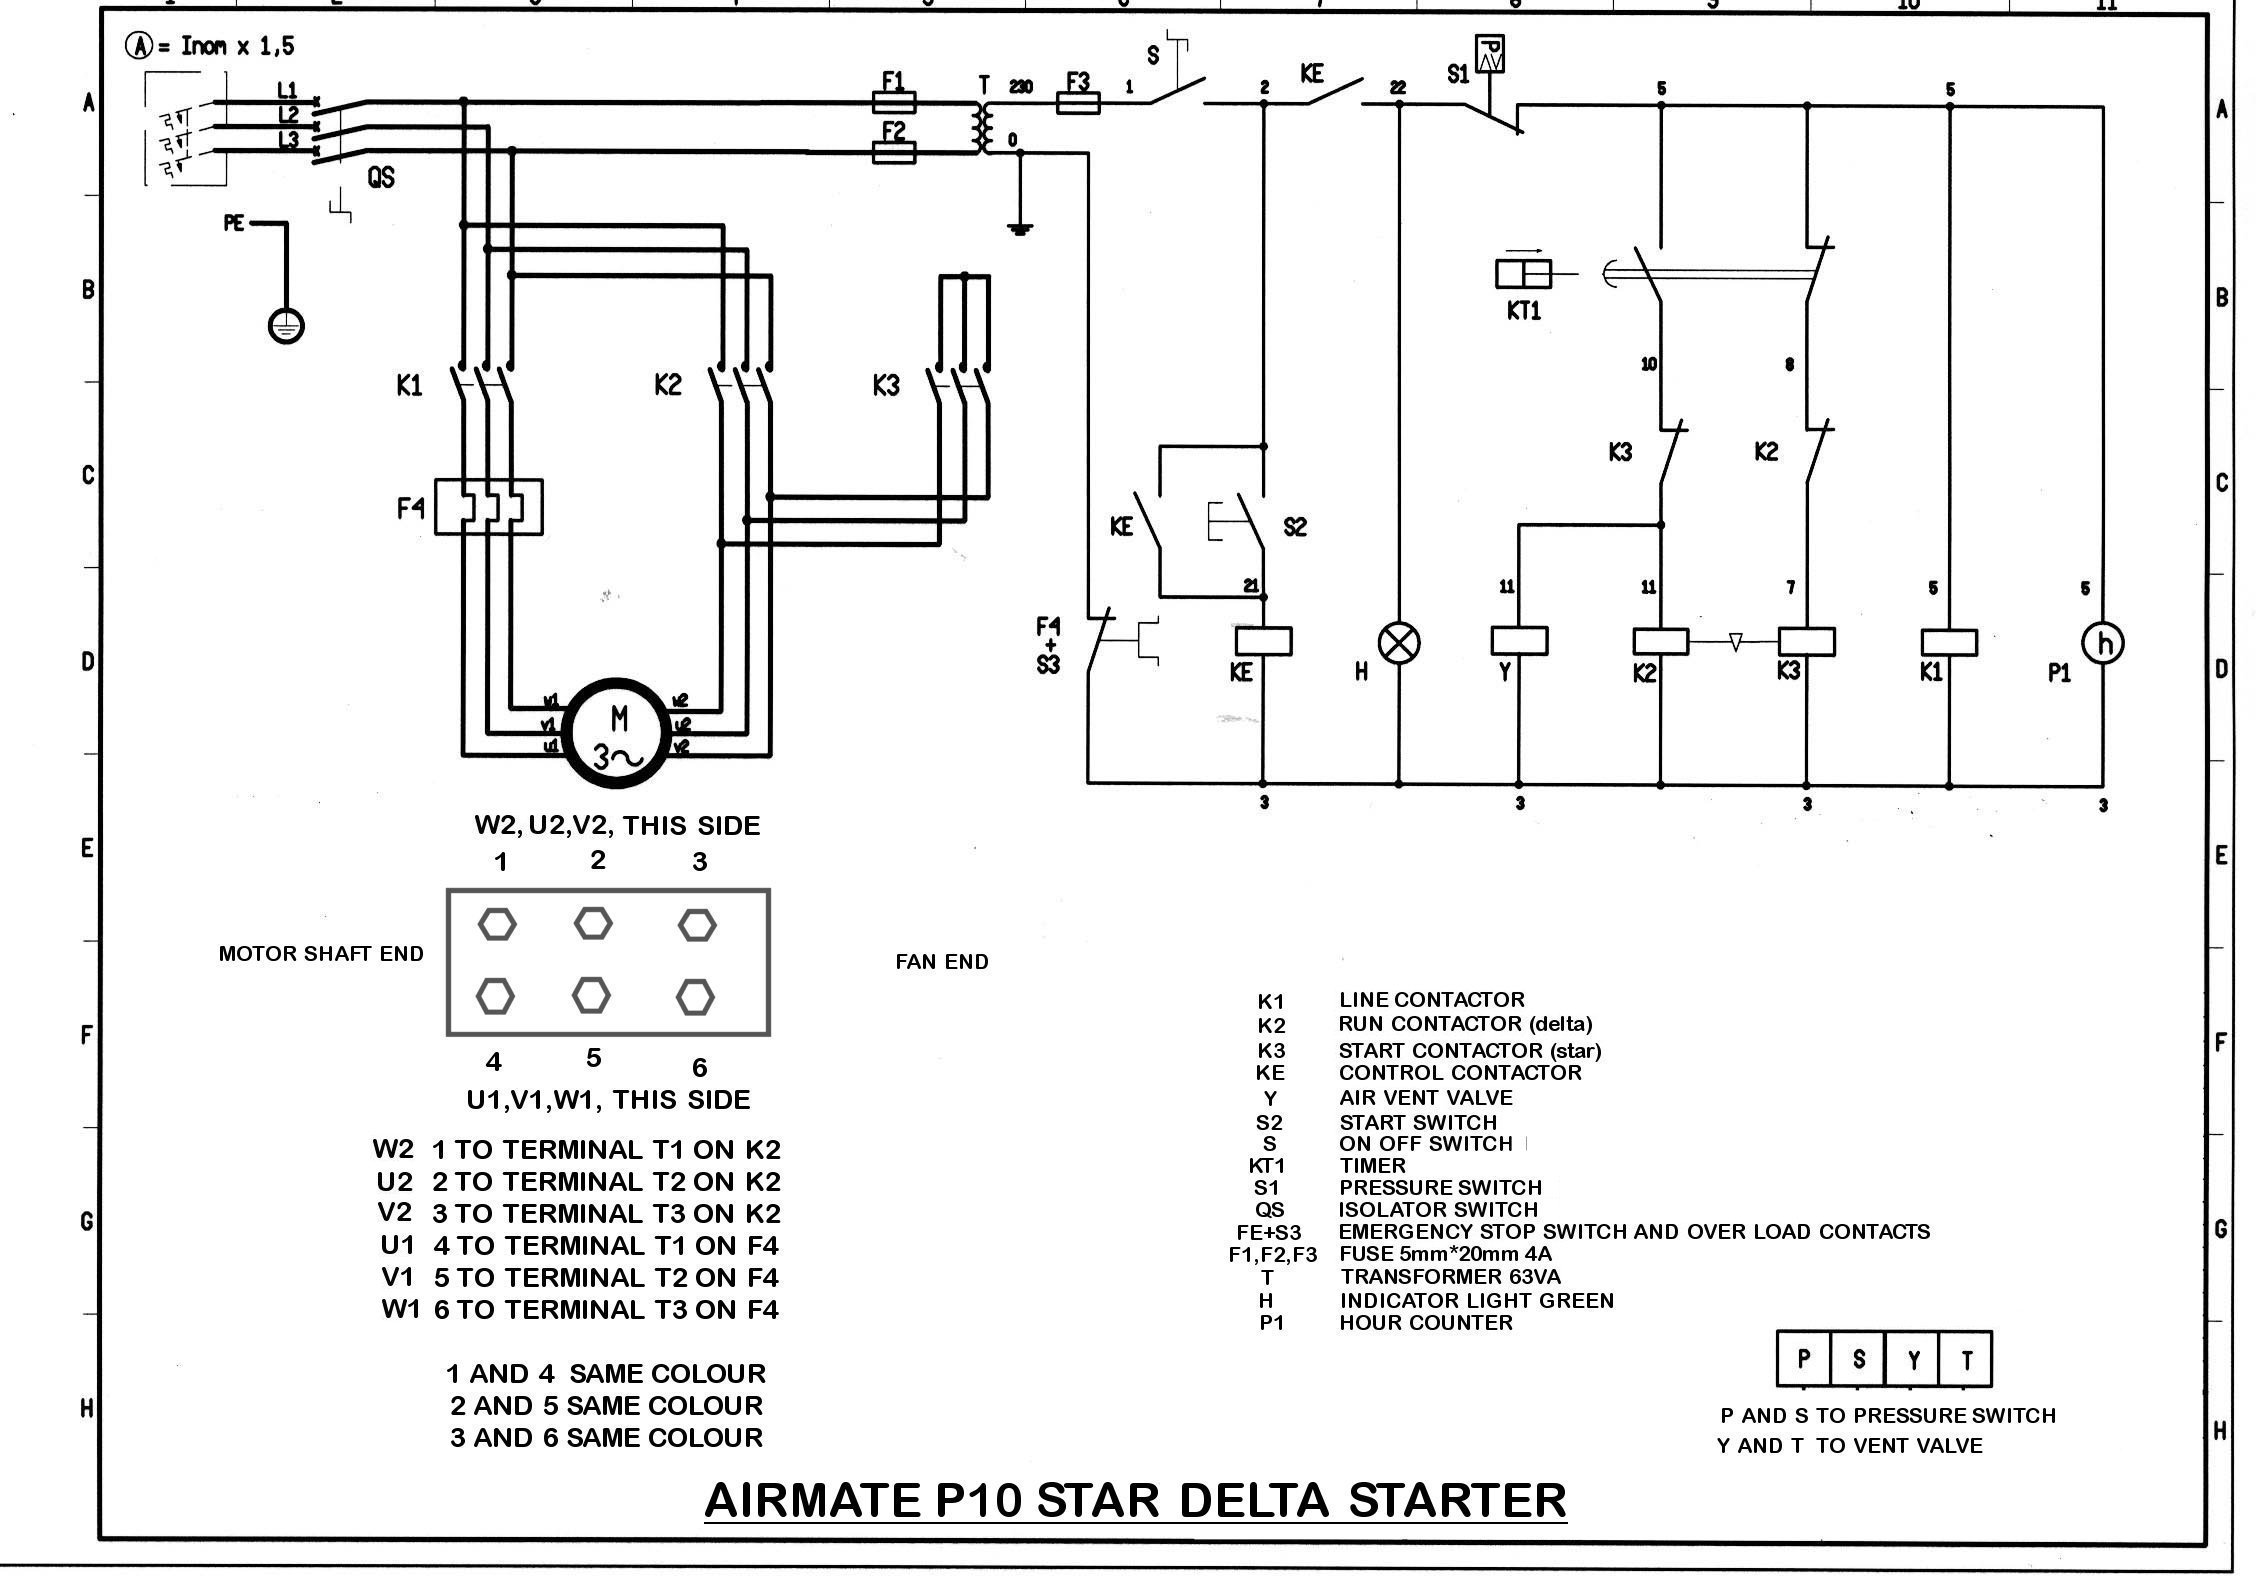 Airmate_P10_wiring airmate p10 270 compressor wiring diagram compressor wiring diagram at panicattacktreatment.co